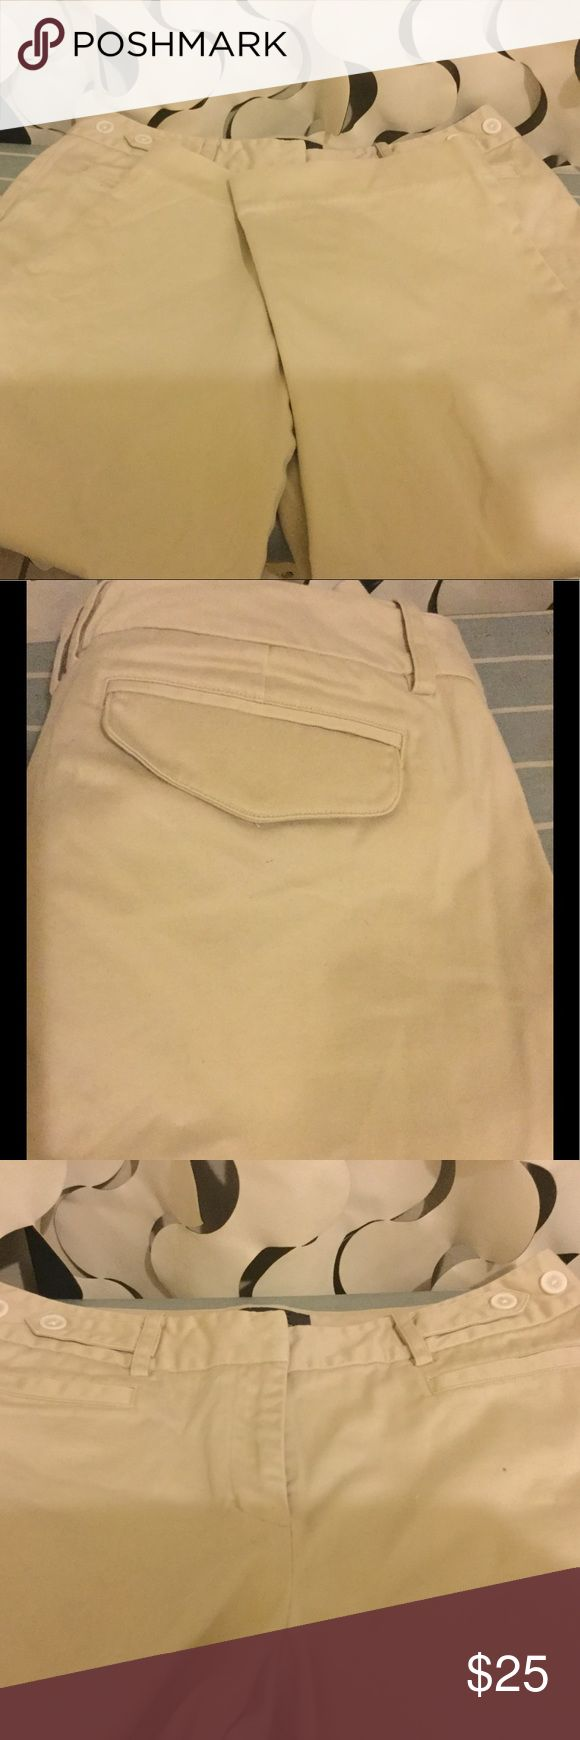 Khaki capris Capri pants have front and back pockets.97%cotton 3%spandex George me design by Mark Eisen Pants Capris